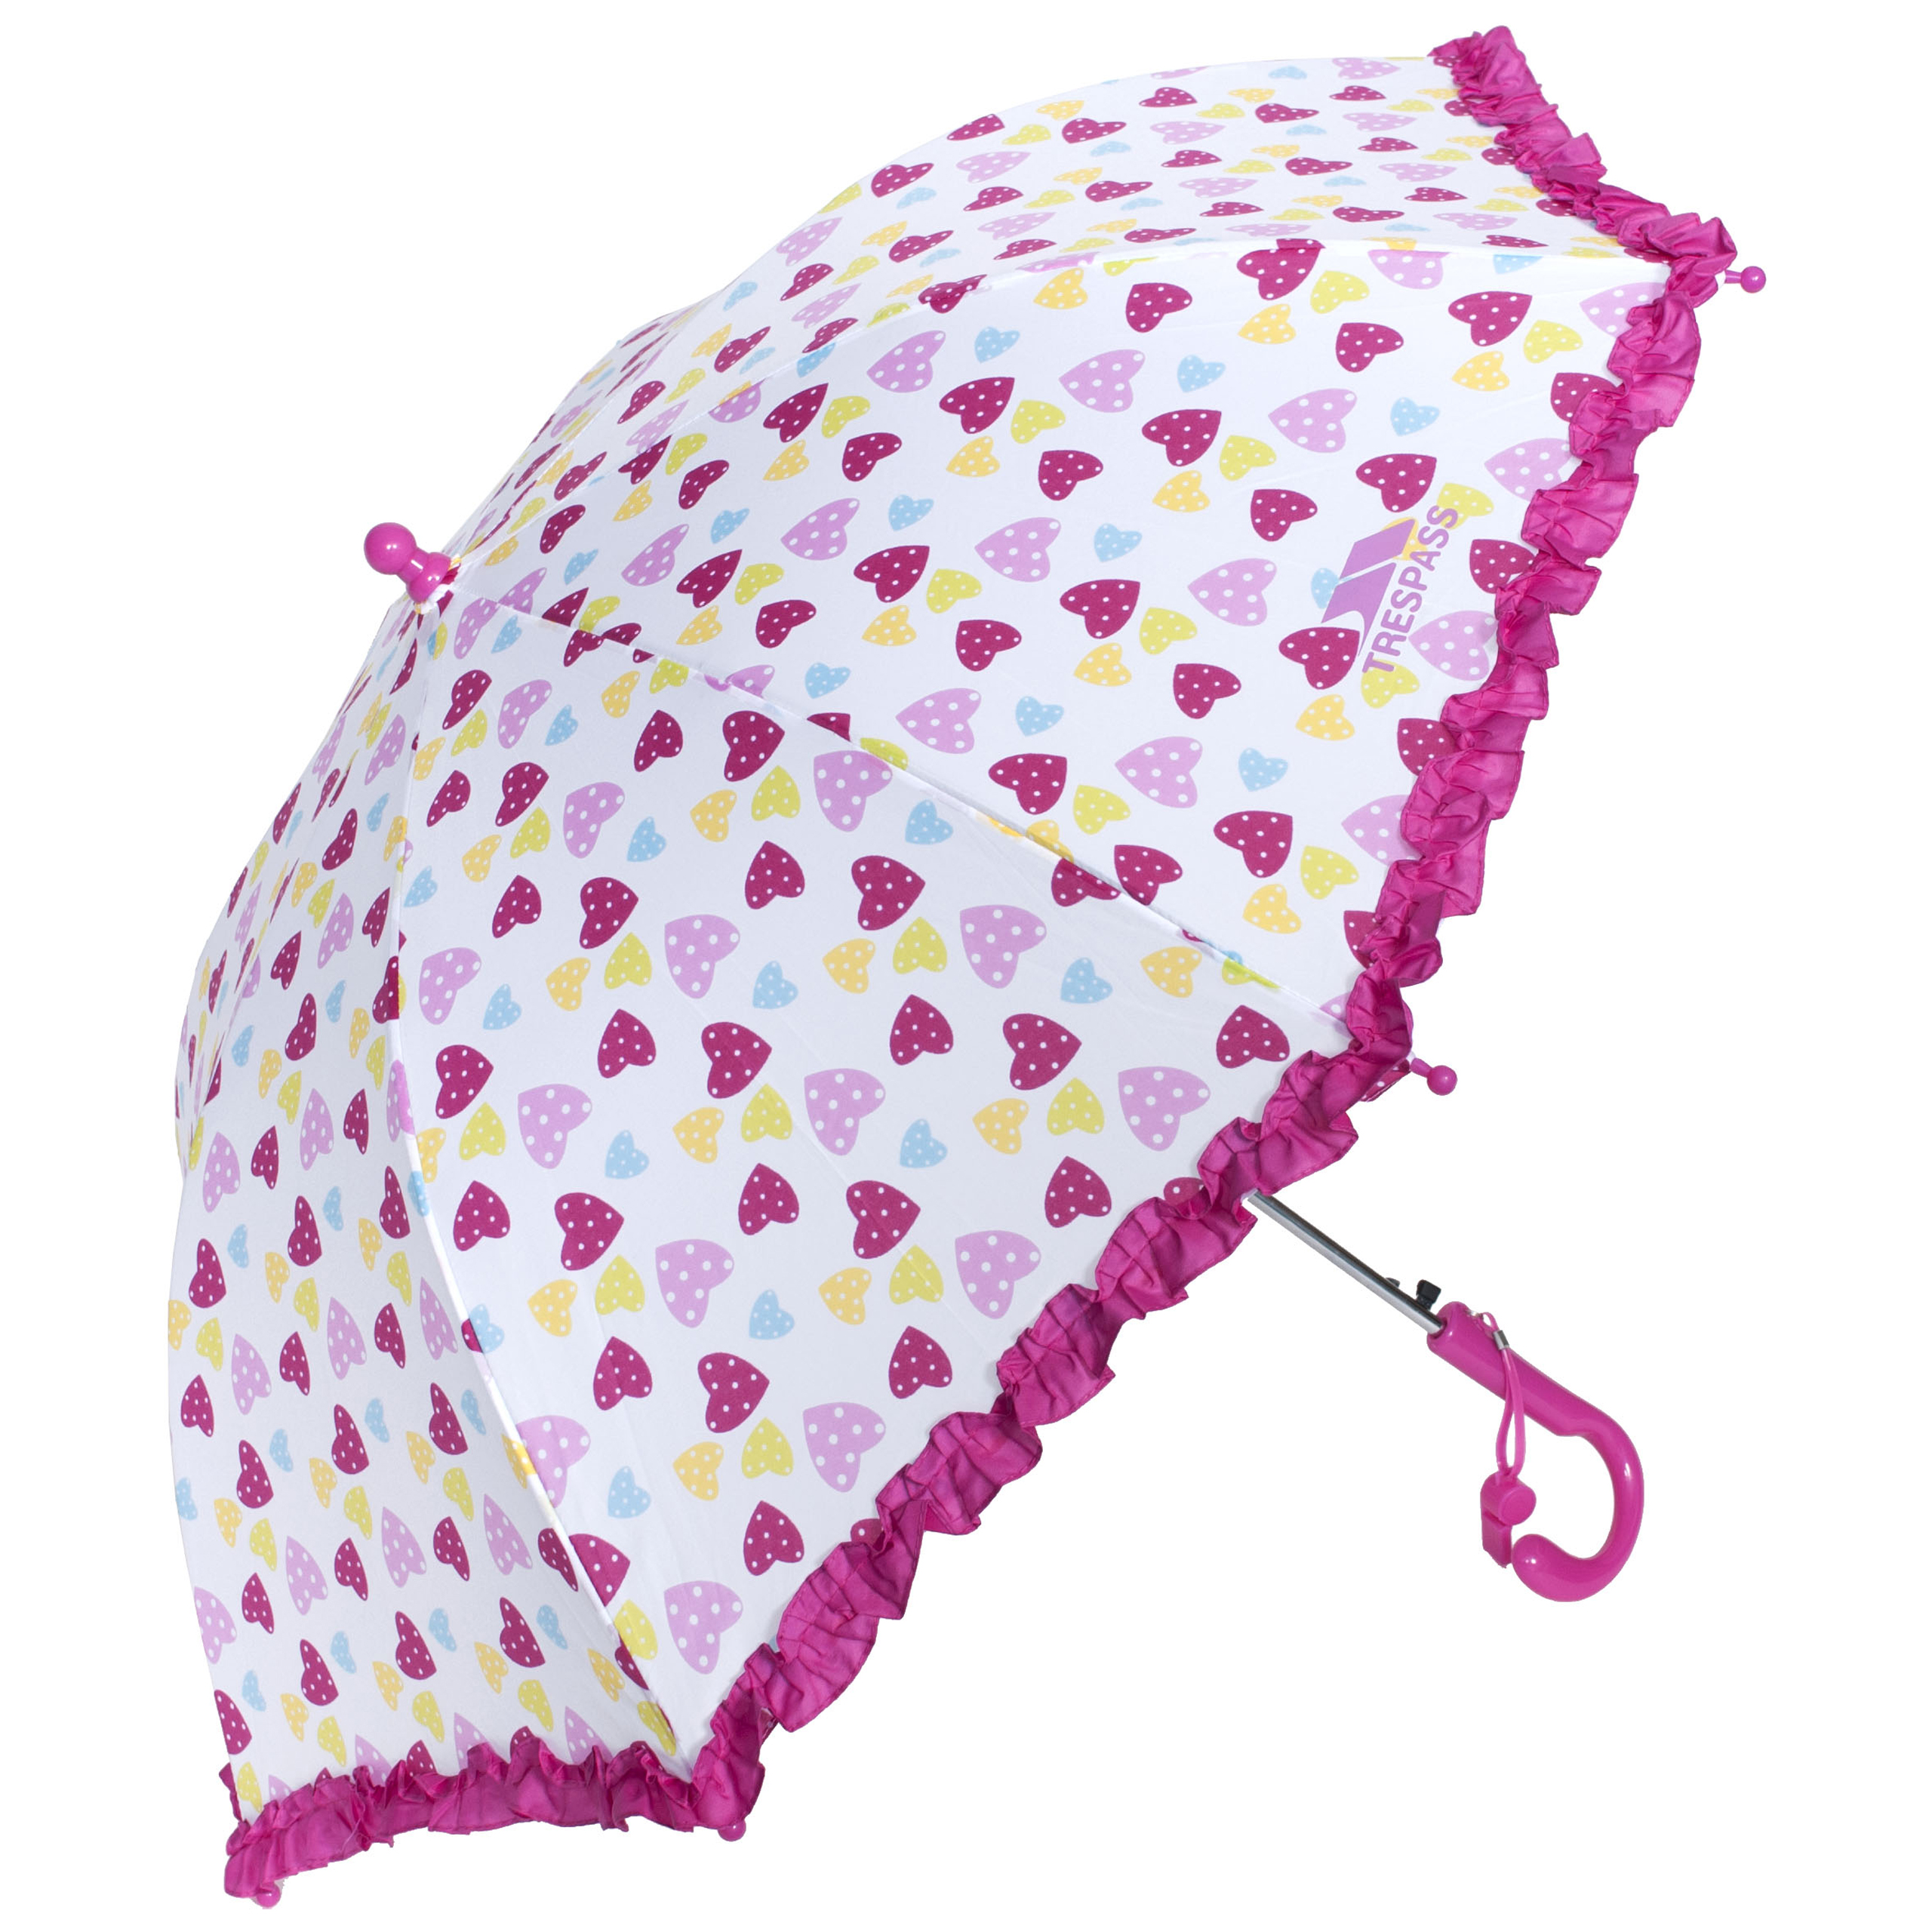 Trespass Printed Kids Umbrella With Ruffled Edges /& Whistle Attached